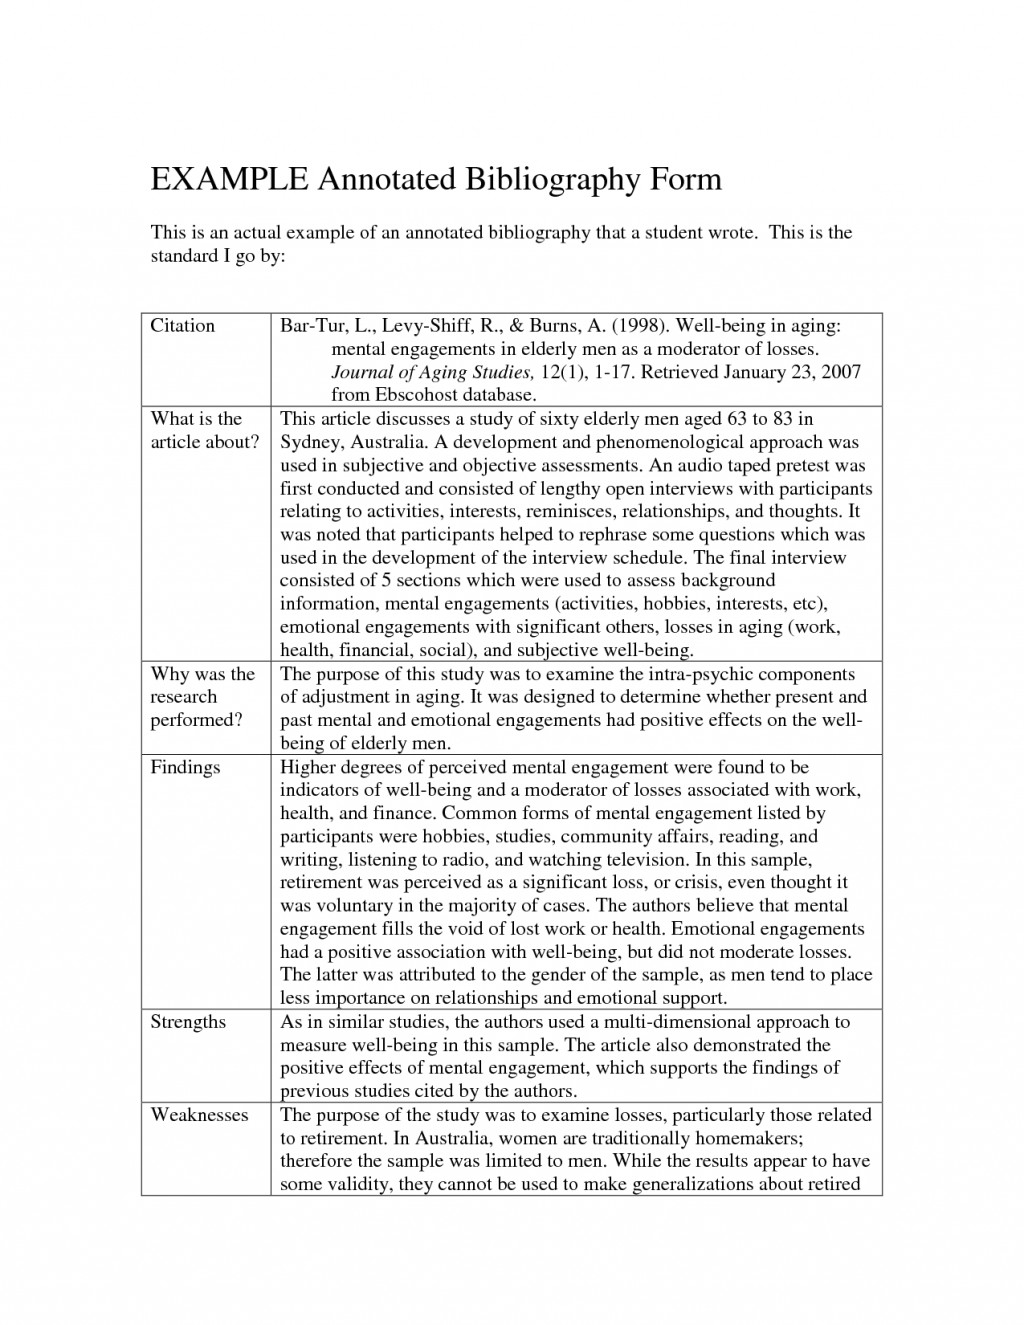 005 Bibliography Research Paper Sample Dreaded Format For Annotated Citing A Large